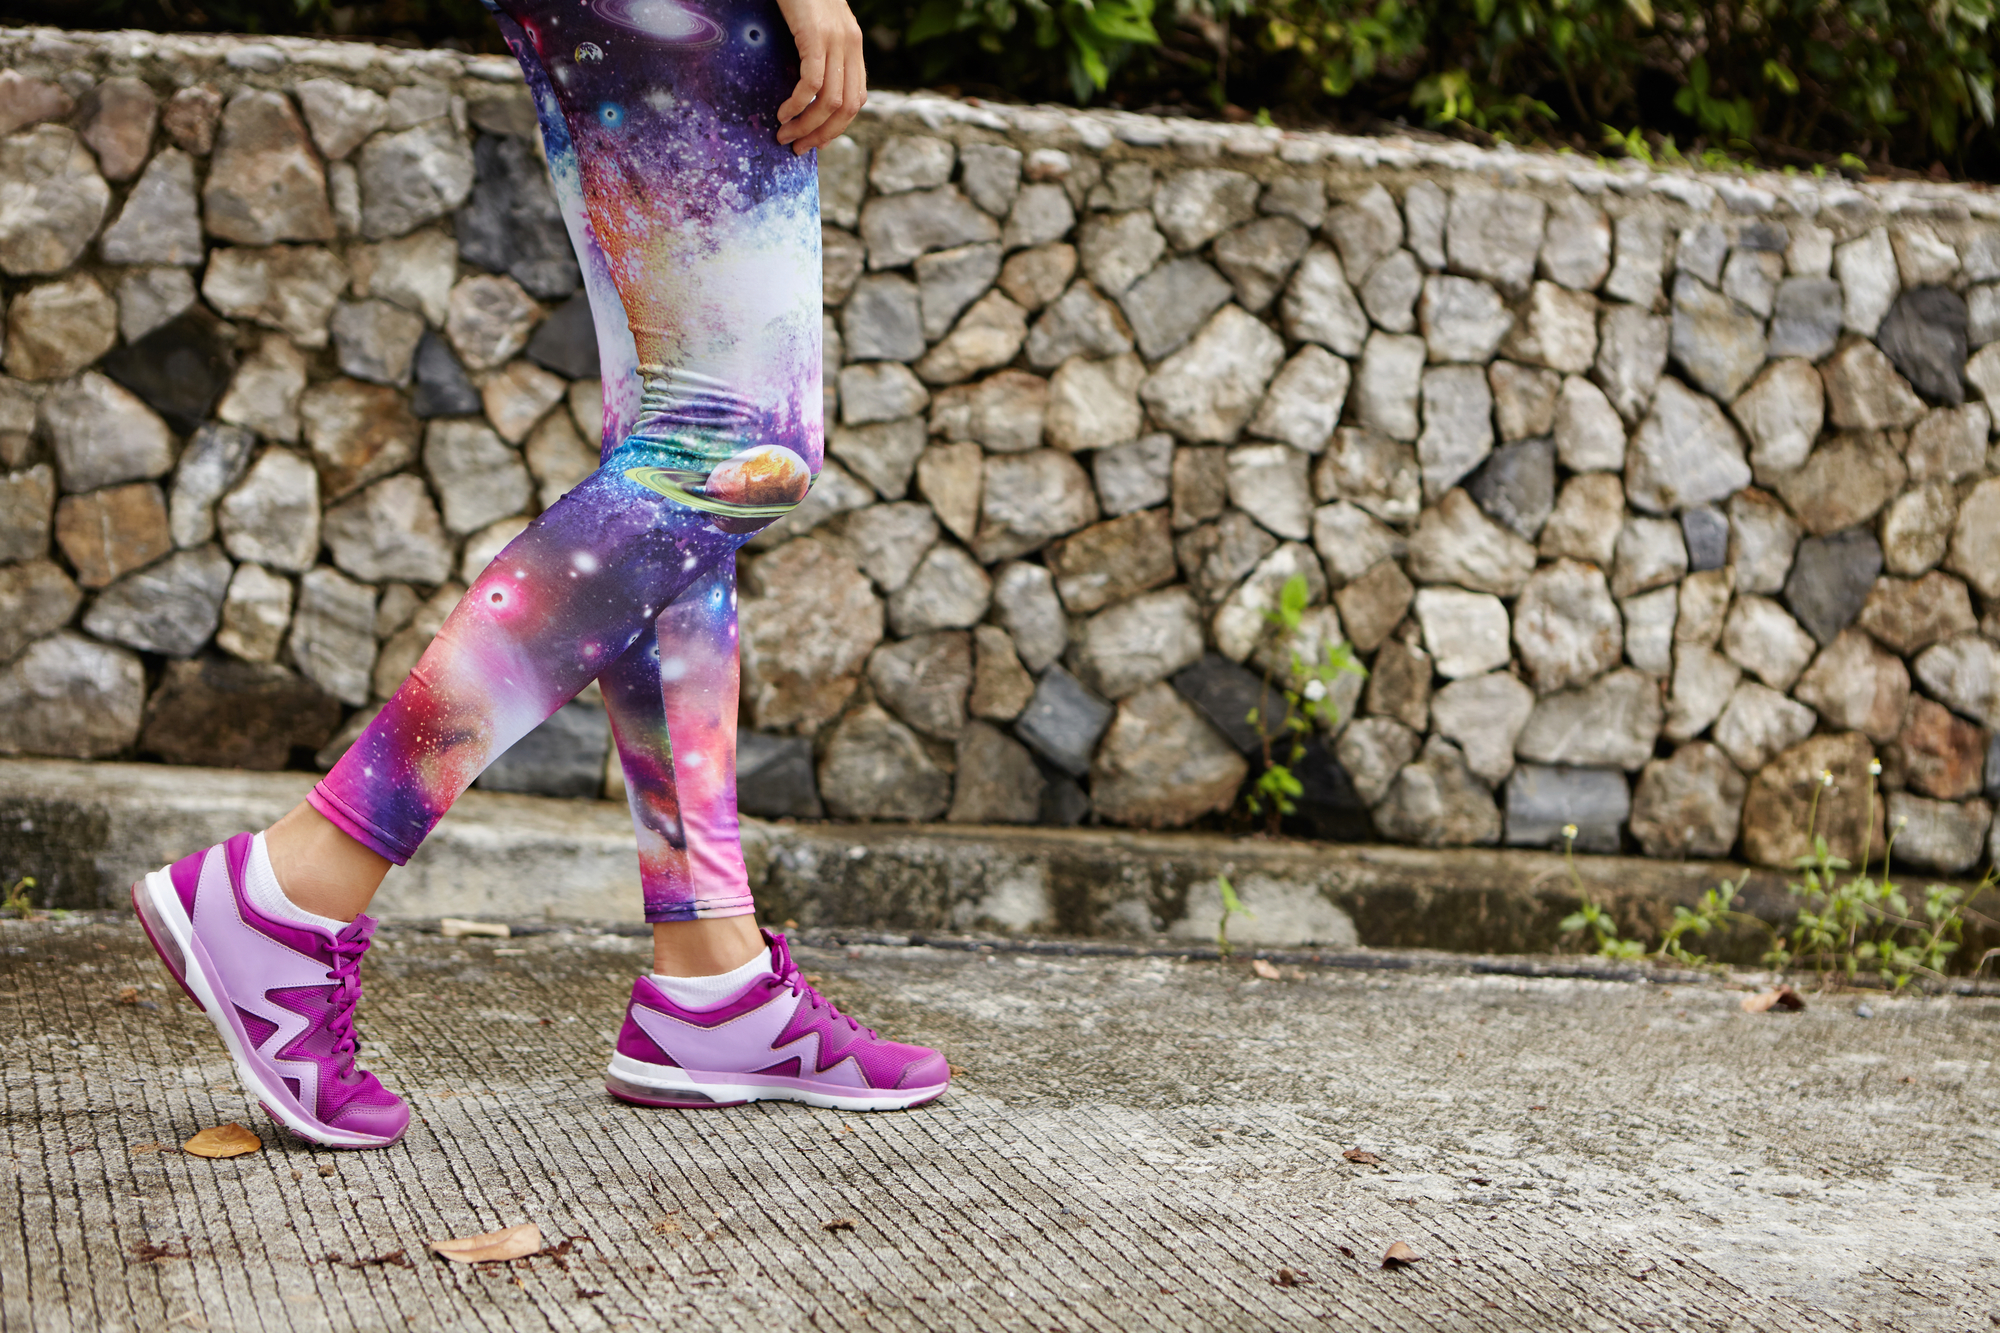 Outdoor portrait of female runner with fit athletic legs wearing purple sneakers walking along concrete path in urban park, catching her breath after intensive workout, preparing for marathon